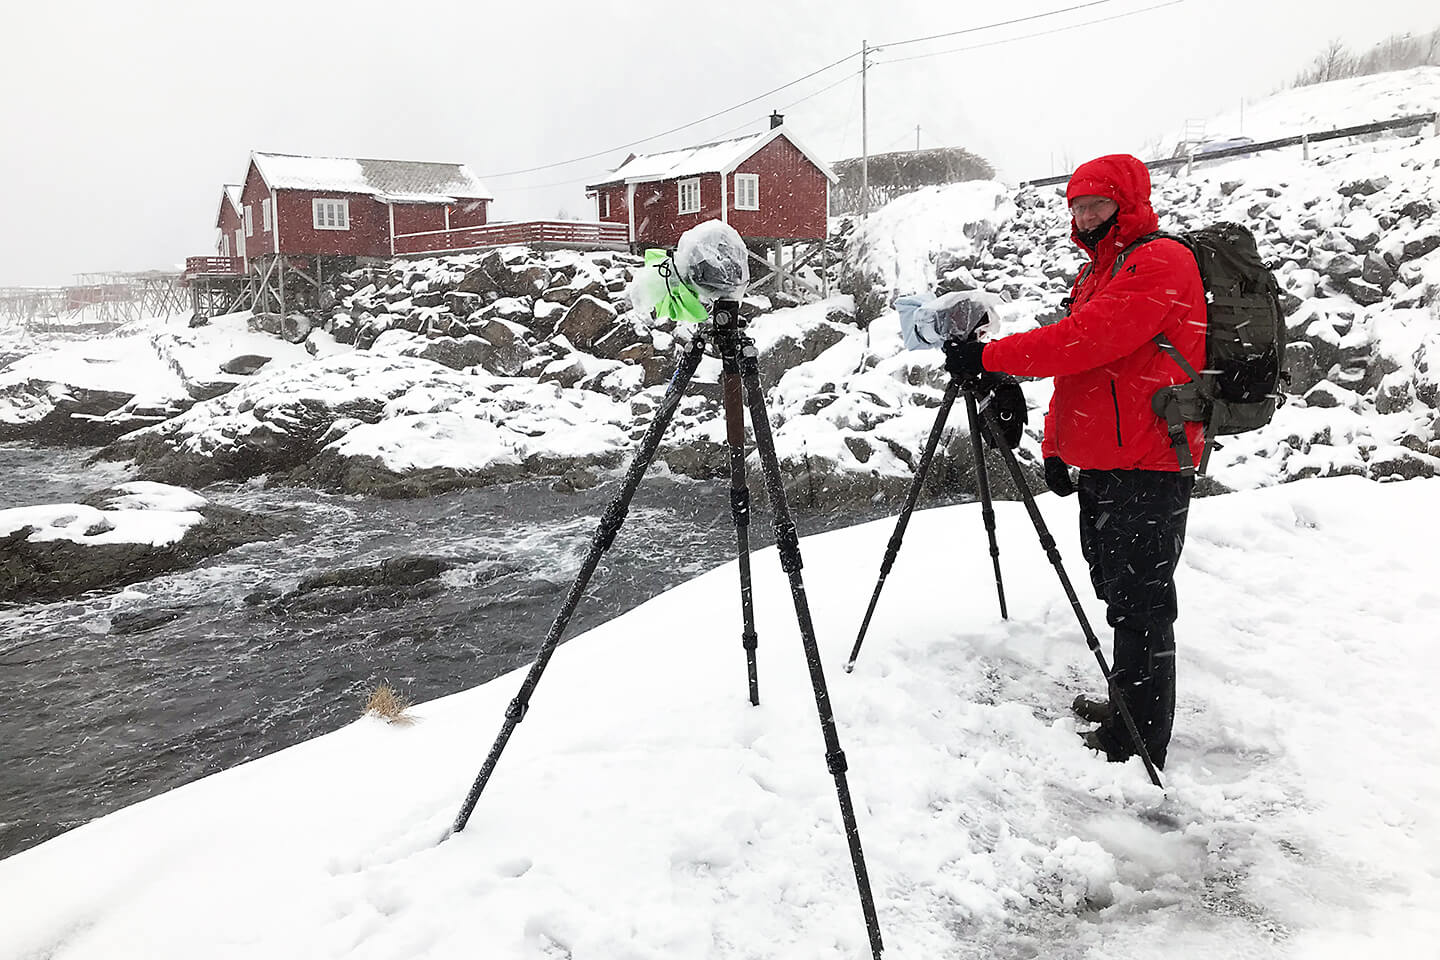 Lofoten fotografieren im Winter. Hier ein Making of in Hamnoy